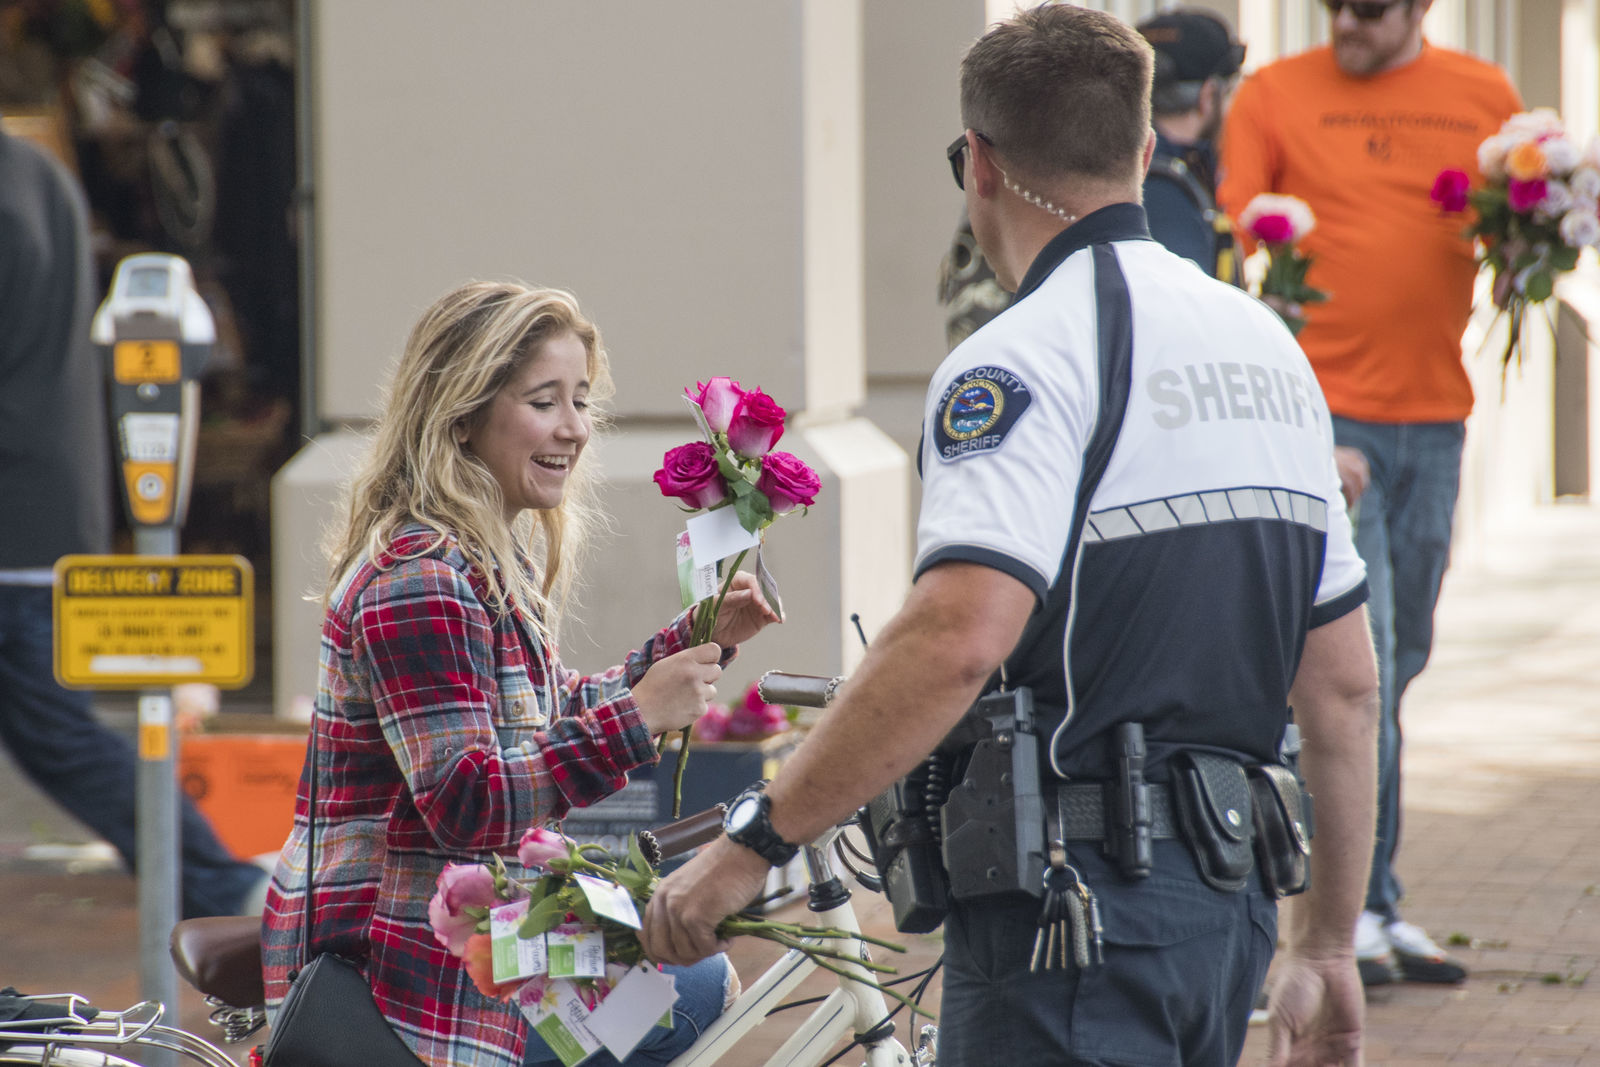 Treasure Valley police and FiftyFlowers.com partnered in Boise to brighten people's day.{ } Volunteers from Treasure Valley police departments and FiftyFlowers.com handed out bouquets{ } in downtown Boise Wednesday hoping to spread happiness to commuters. (Photos by Axel Quartarone)